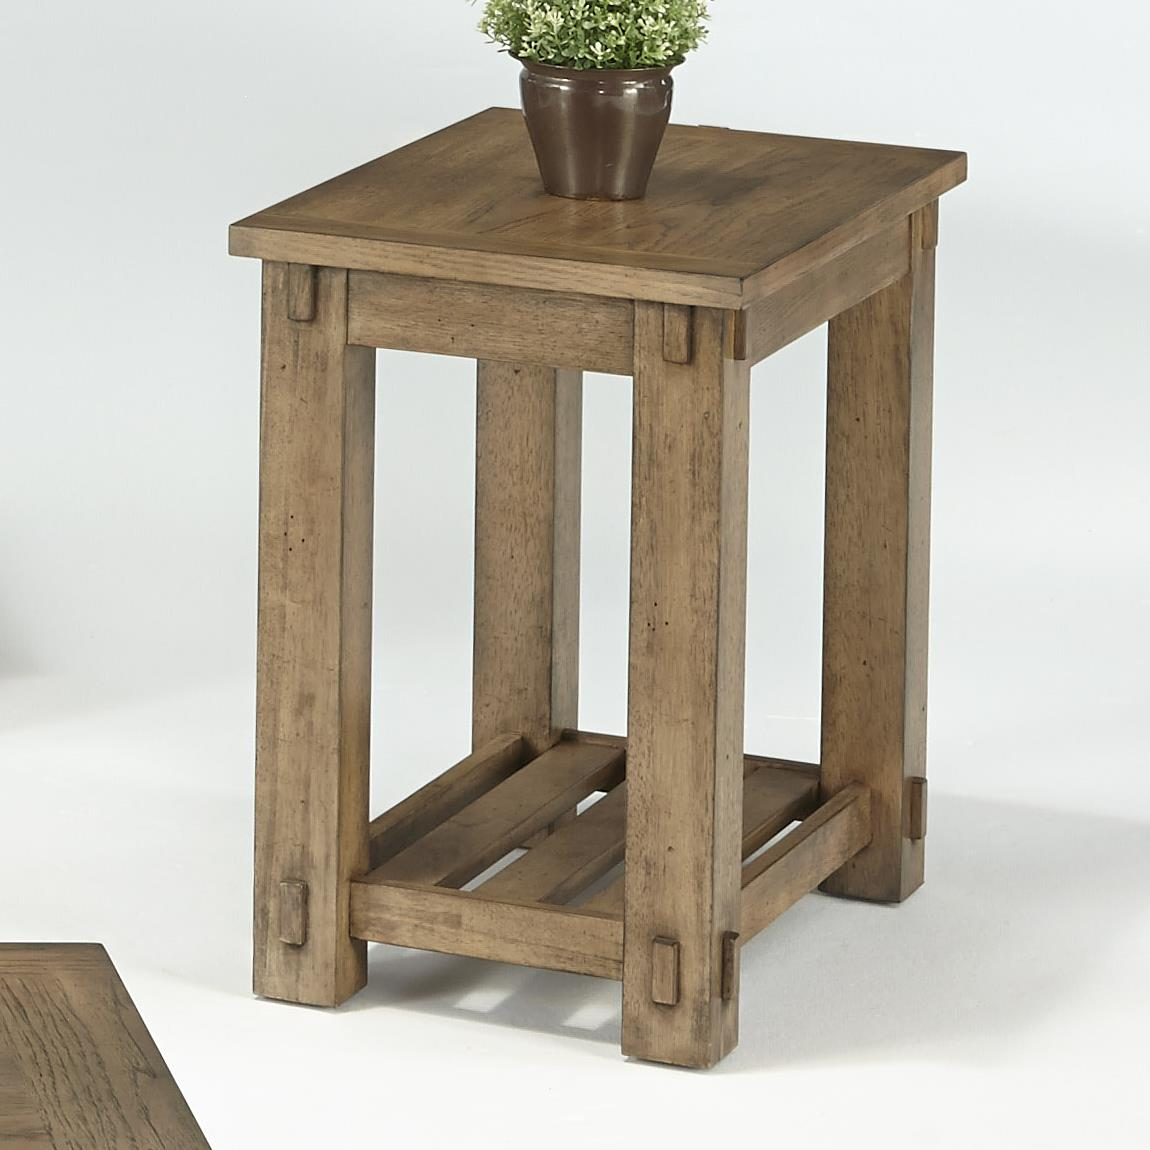 Progressive Furniture Boulder Creek Chairside Table - Item Number: P549-29